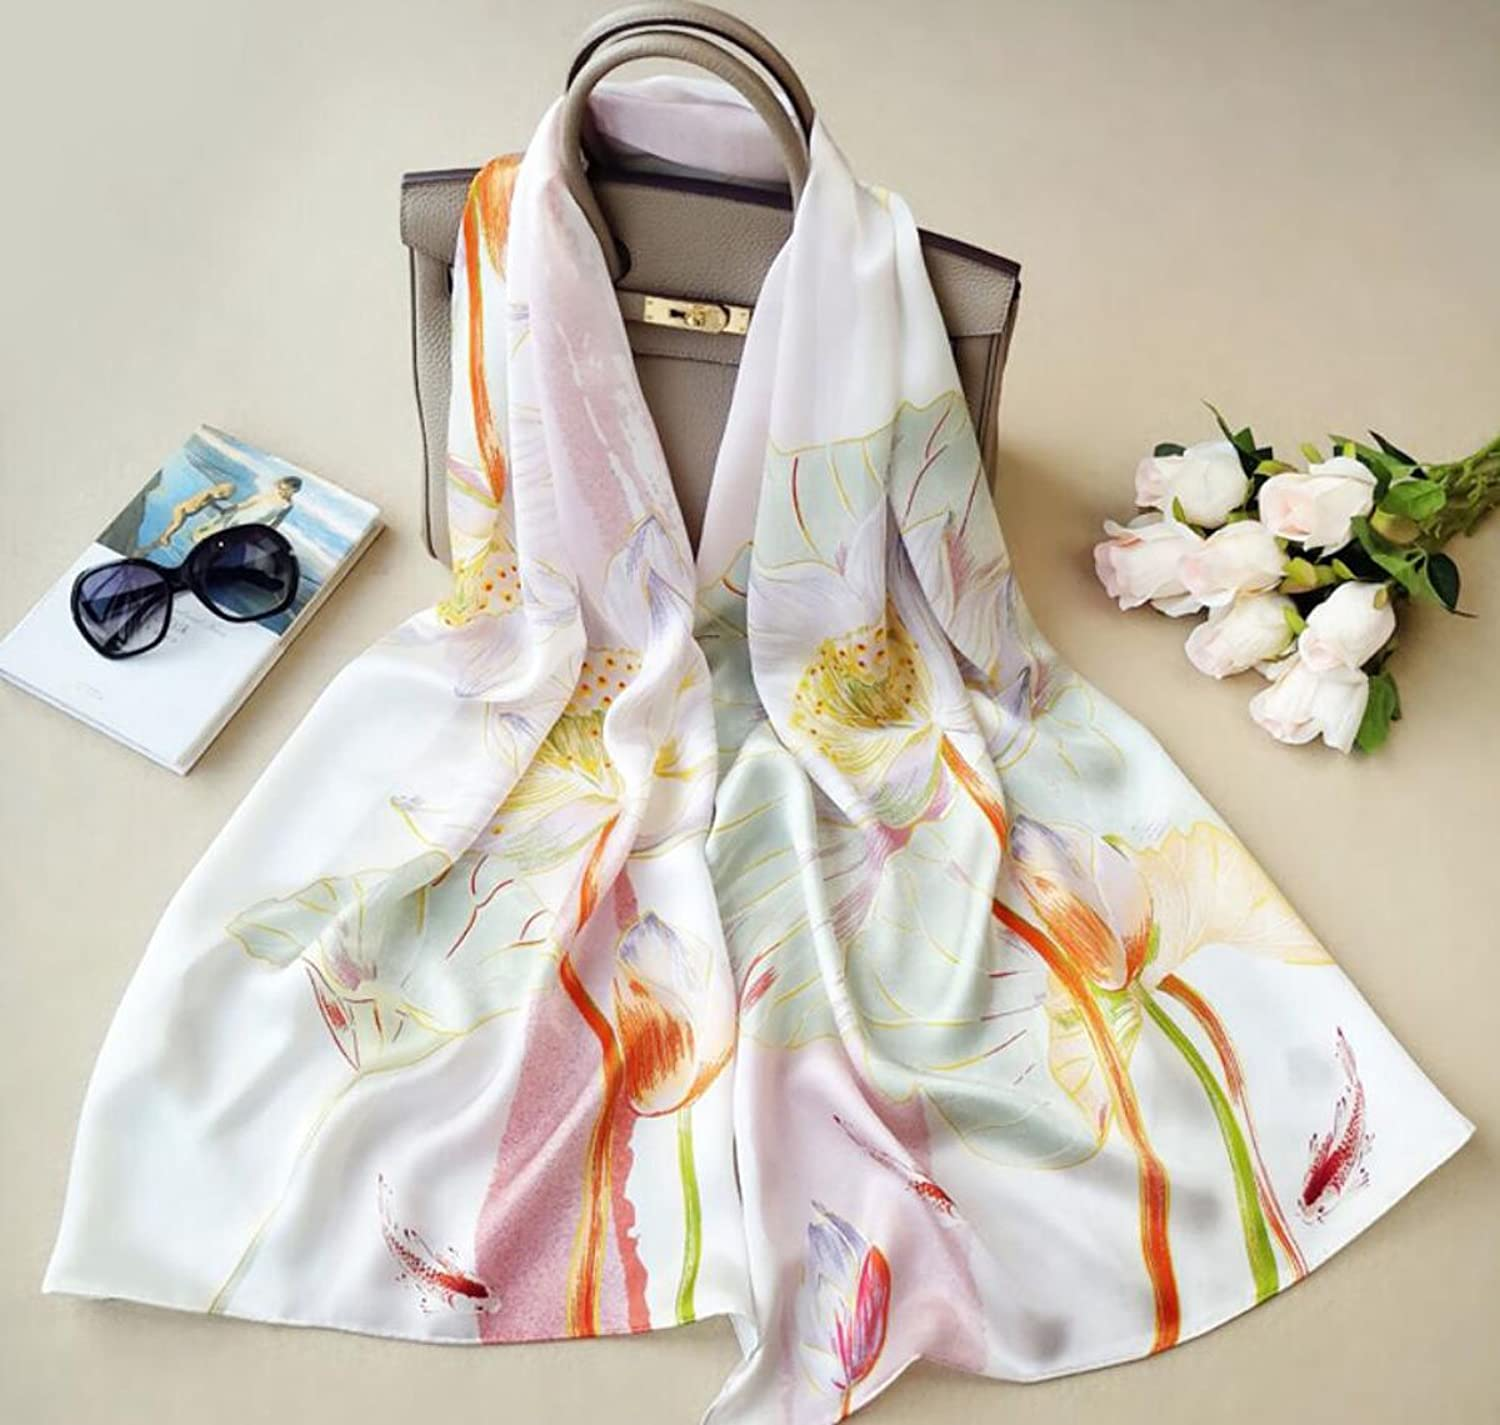 GAO Silk scarf Print Embroidery Embroidery 100% silk scarf Satin scarf Women's long wild silk shawls Spring and summer beach towels (Length  175cm, Packing of 1) (color   B)